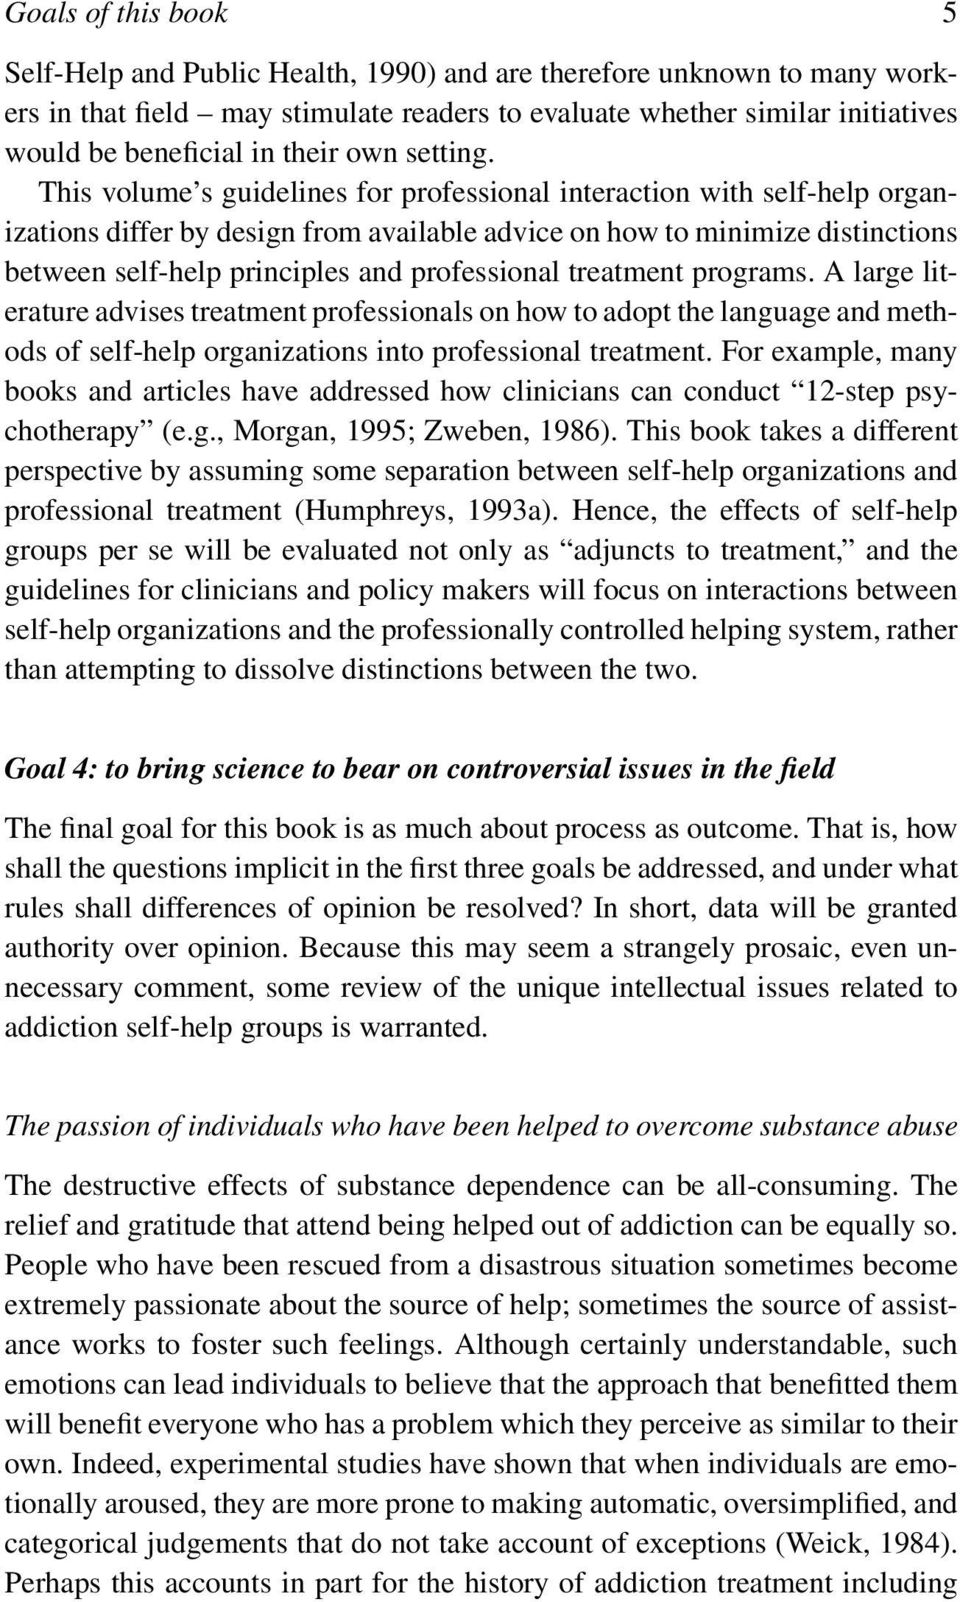 This volume s guidelines for professional interaction with self-help organizations differ by design from available advice on how to minimize distinctions between self-help principles and professional